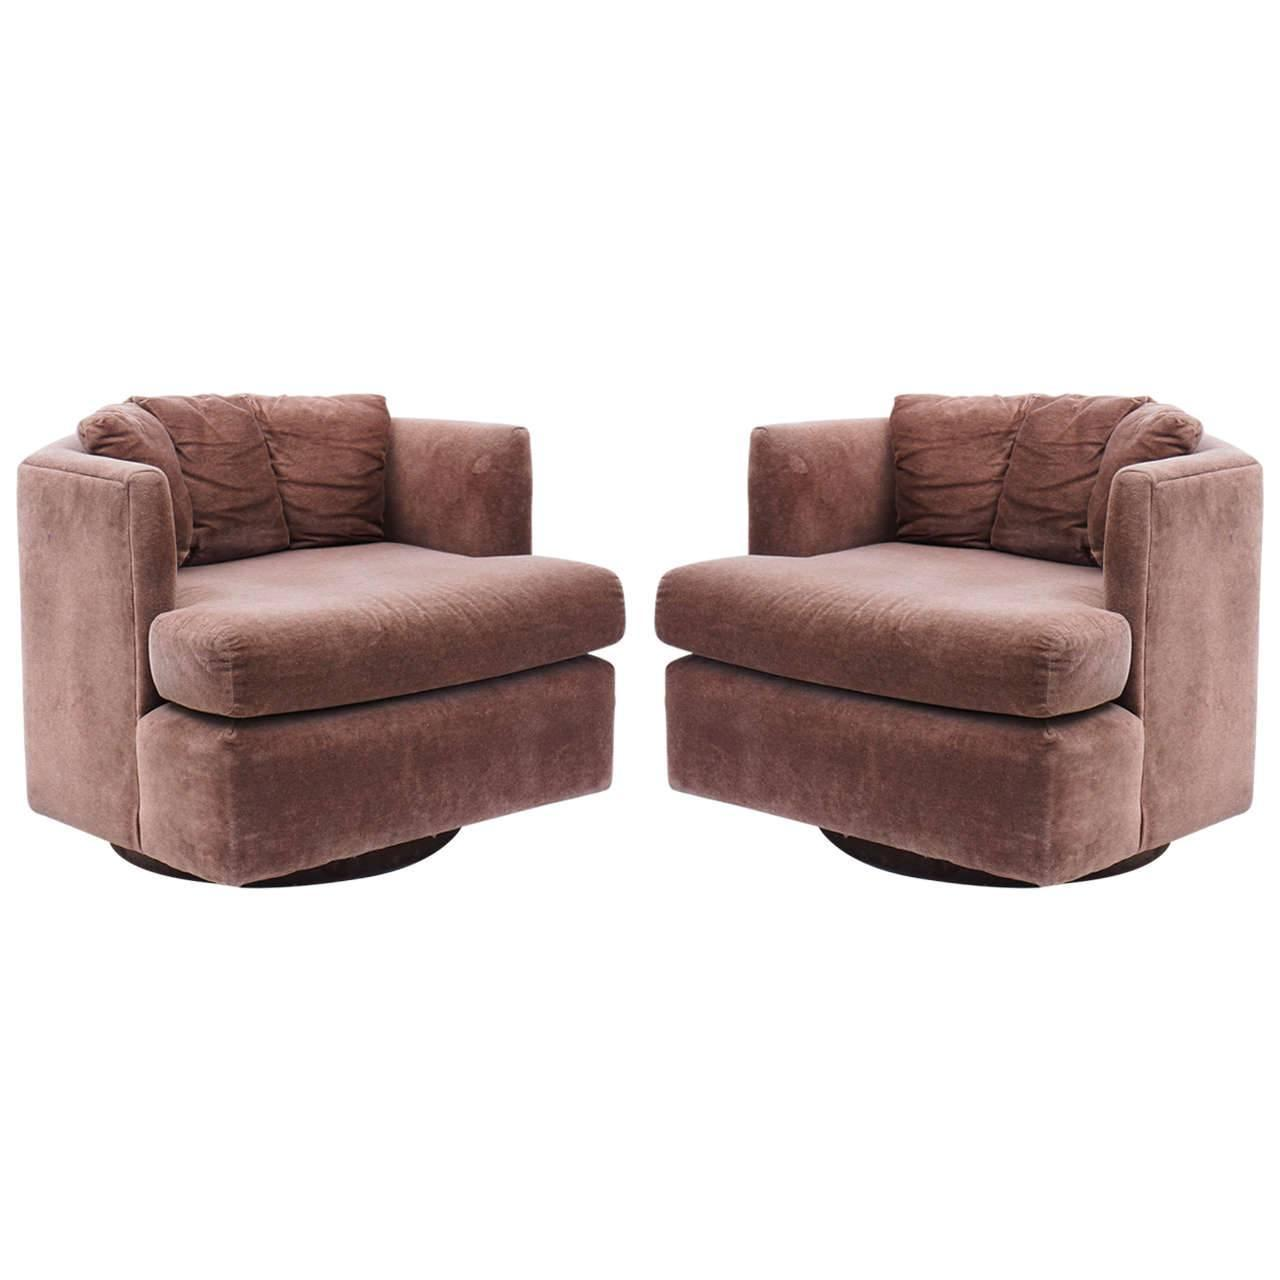 Pair Of Mid Century Modern Baughman Faceted Swivel Tub Chairs For Sale At 1st